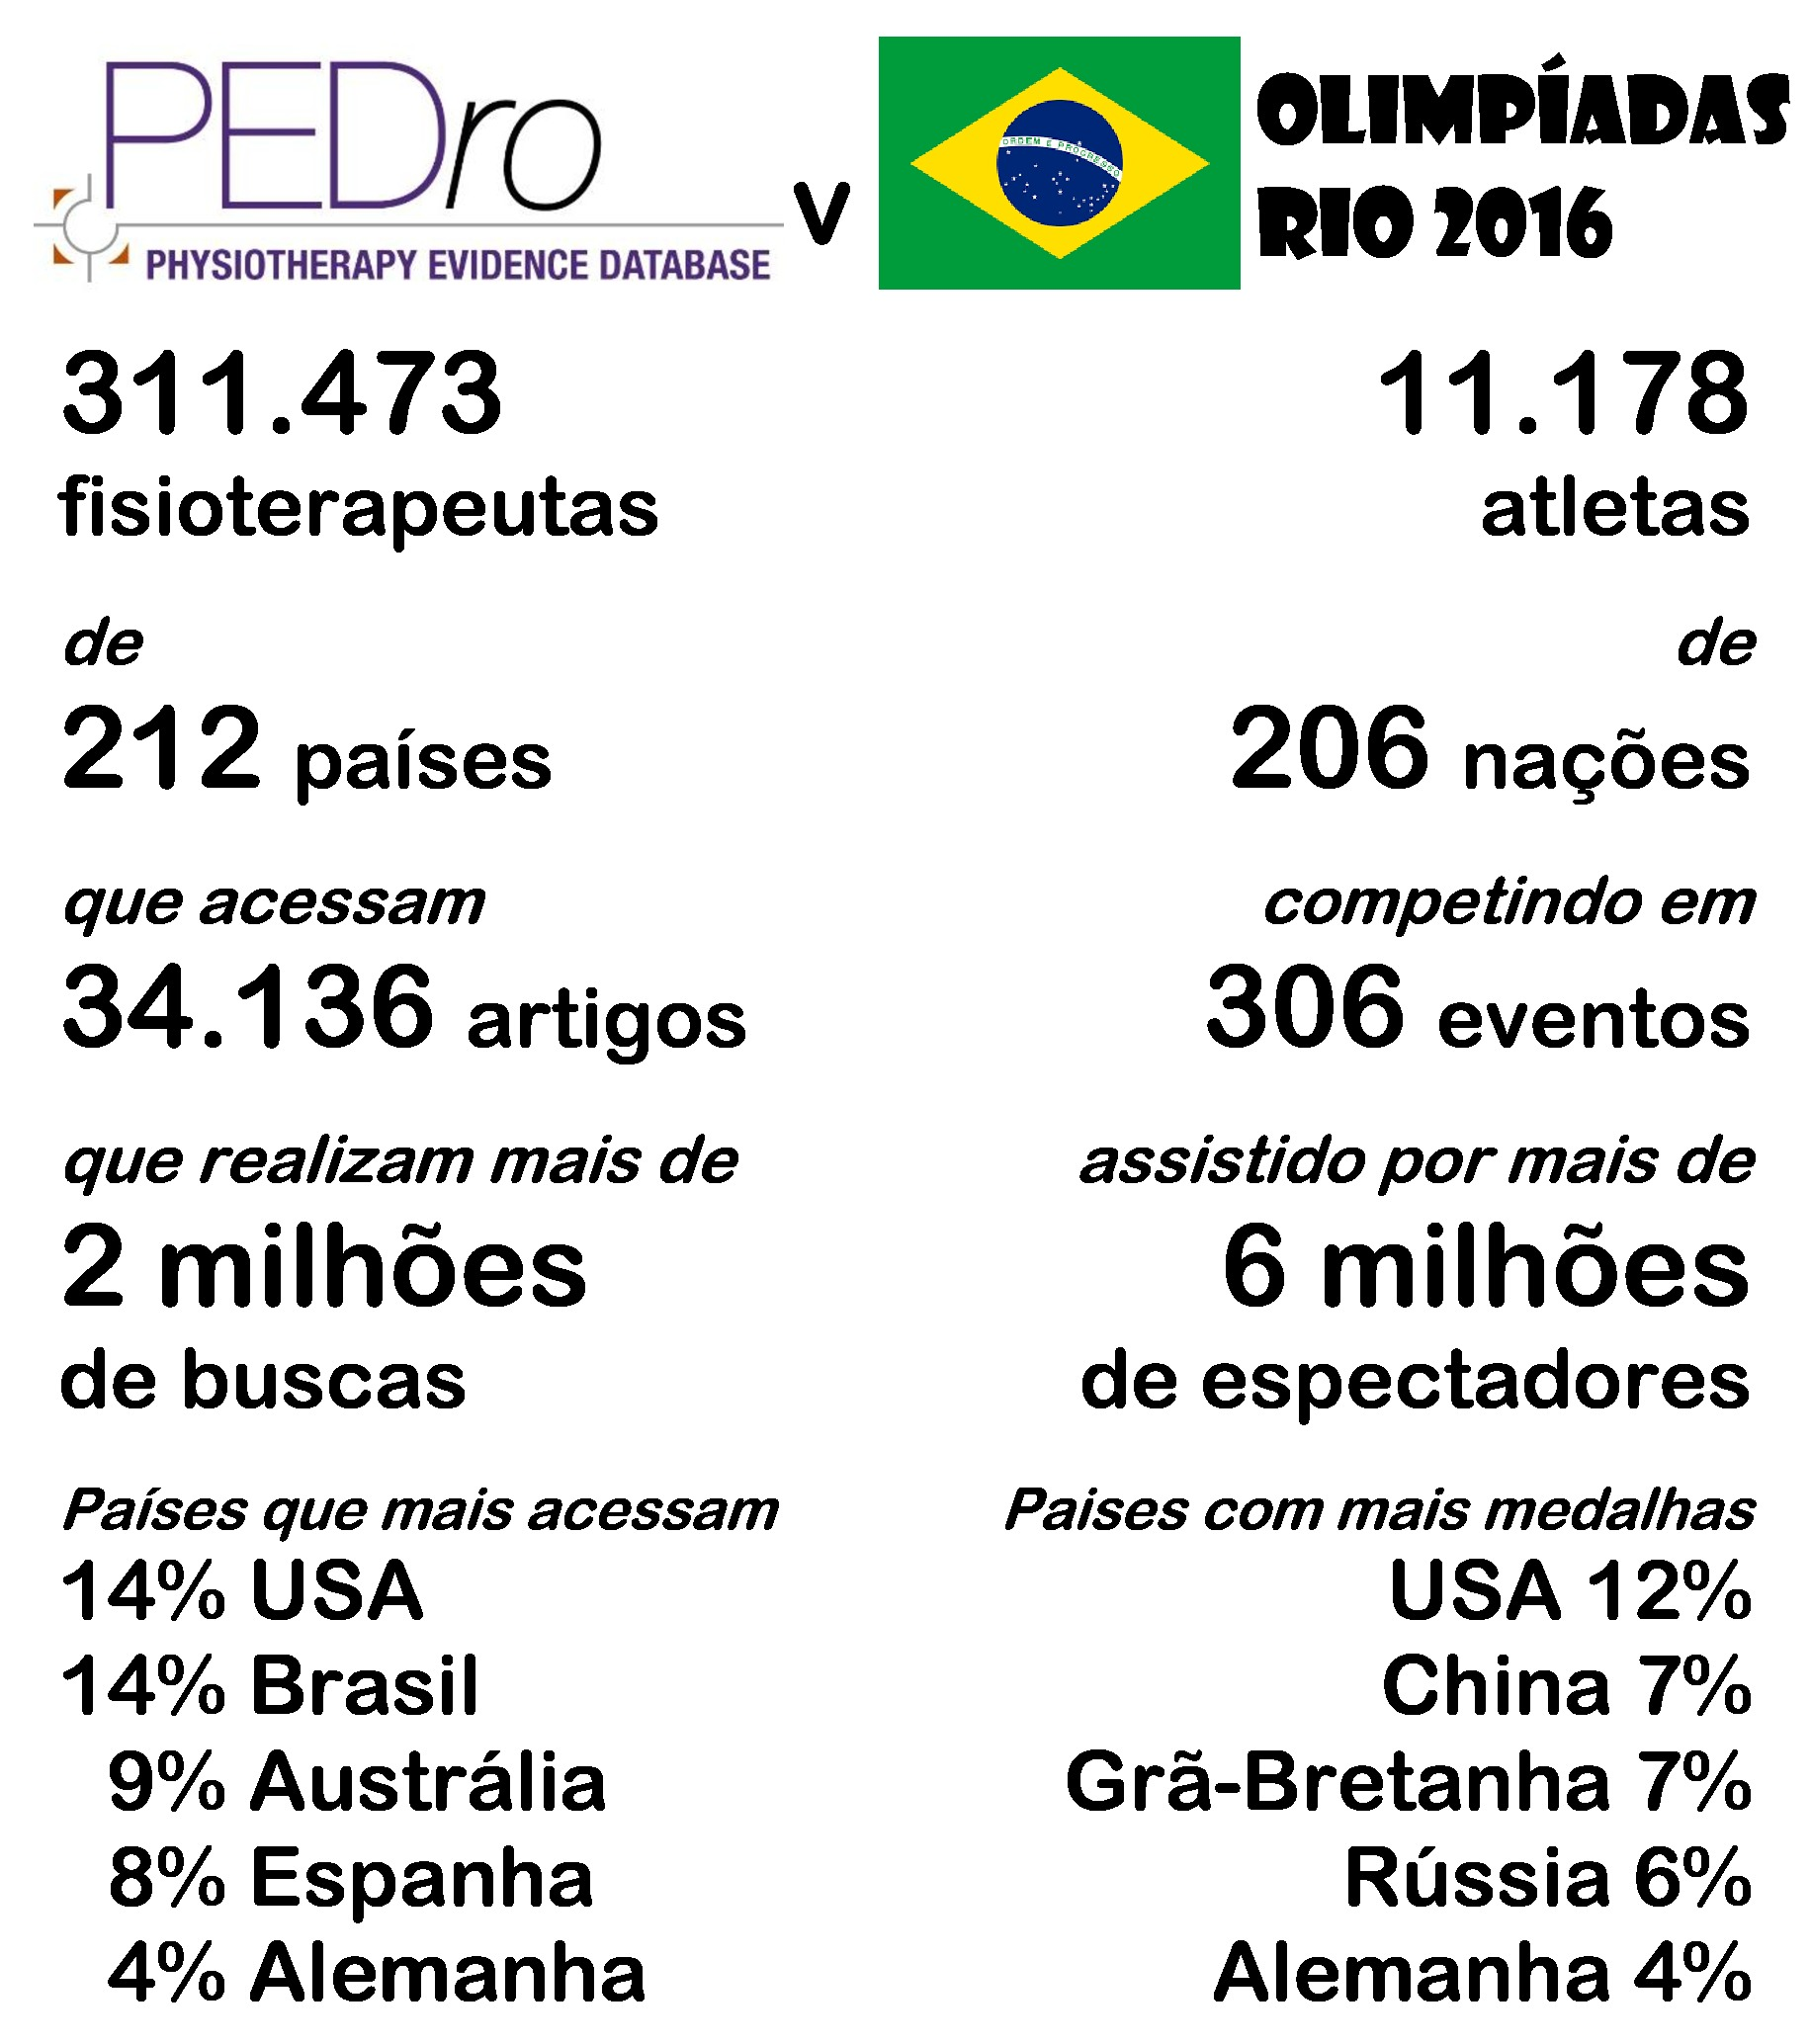 olympics infographic Portuguese 2